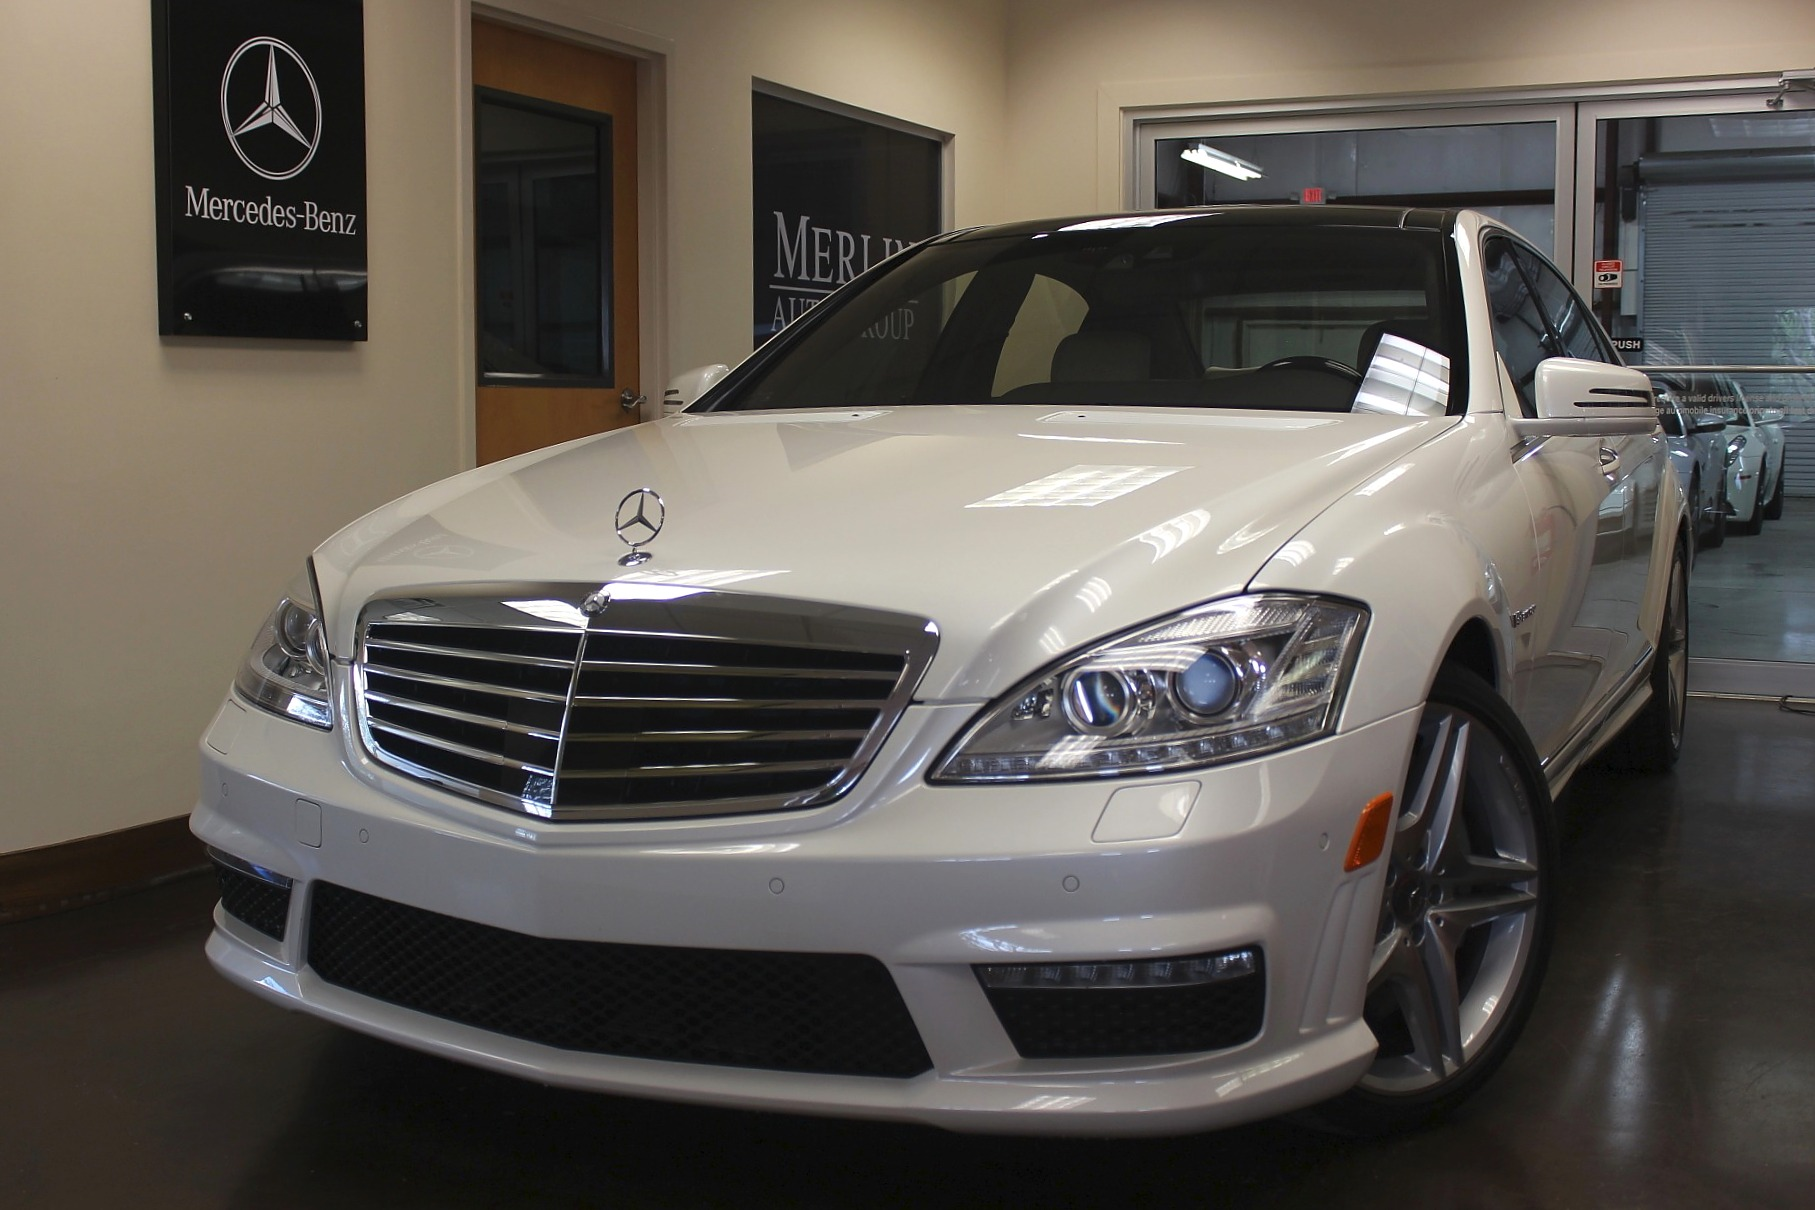 Used 2013 mercedes benz s class stock p3197 ultra luxury for Mercedes benz s63 amg 2013